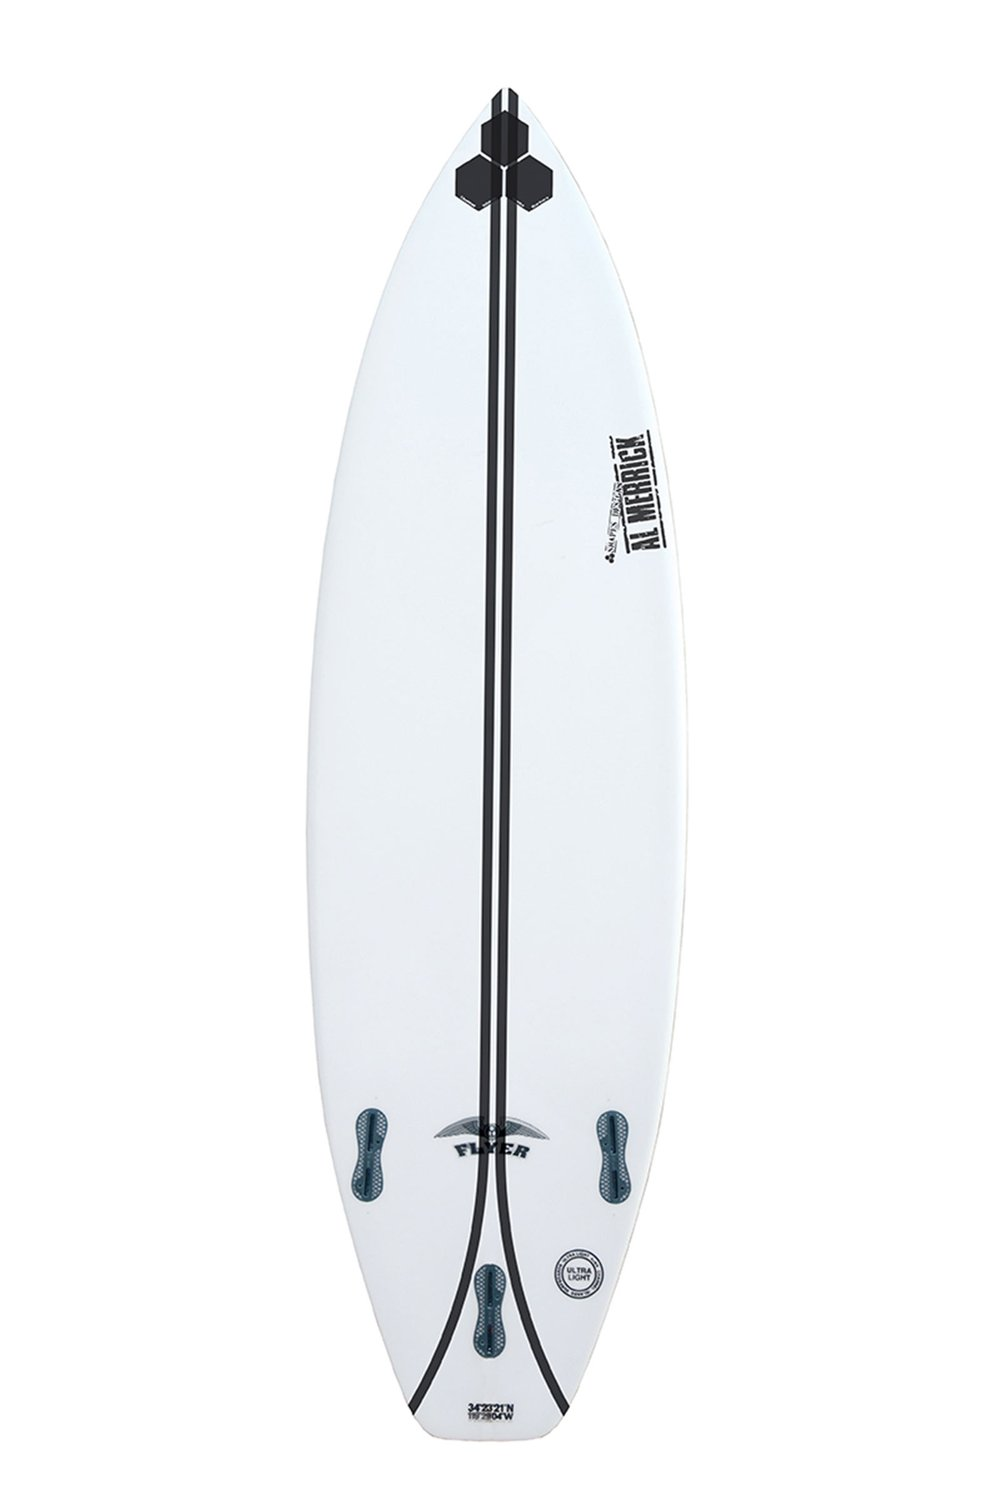 Channel Islands OG Flyer Spine-Tek Surfboard